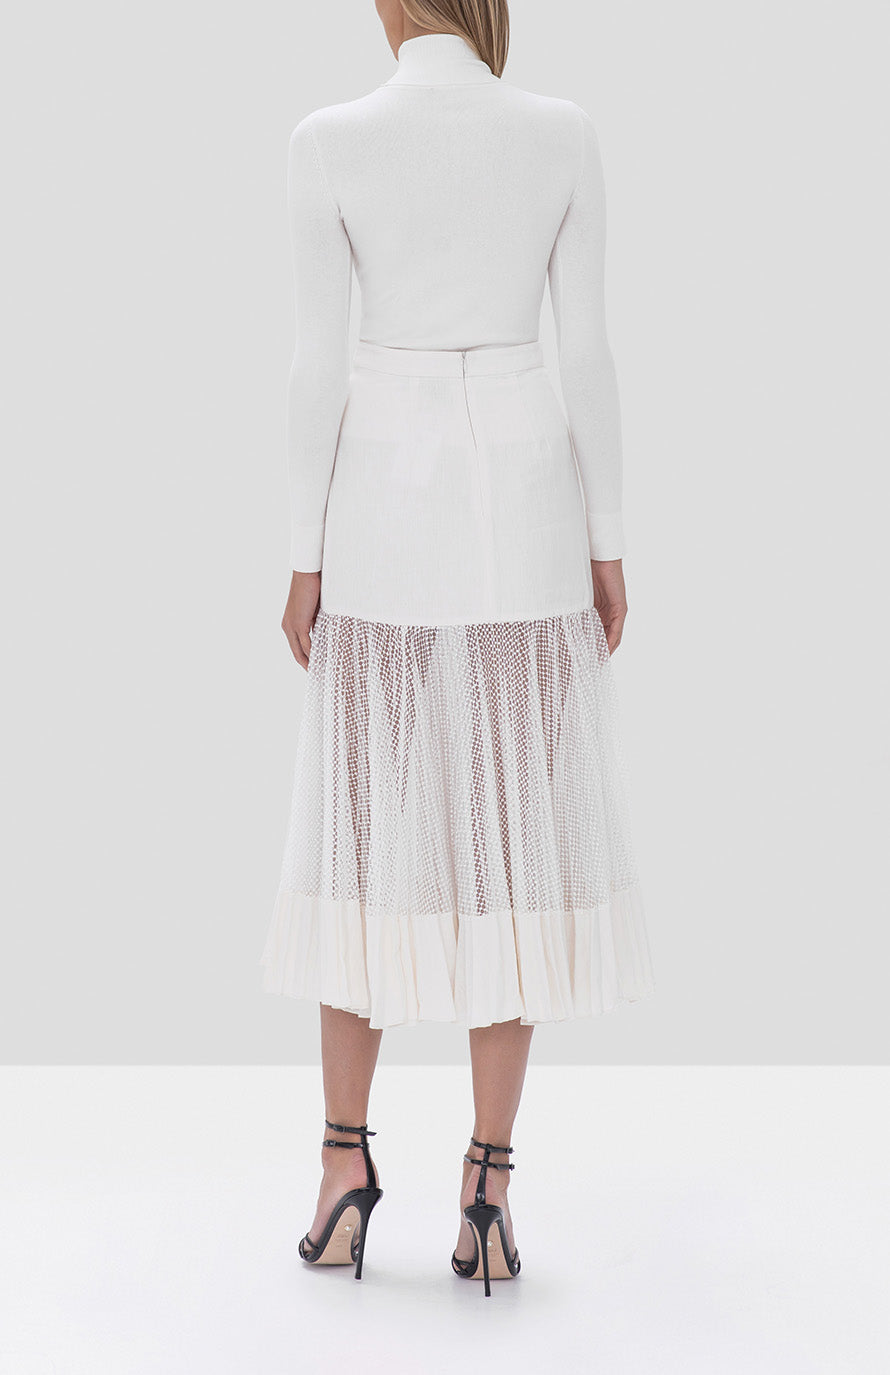 Alexis Bartley Skirt in White and Jaiko Sweater in White from the Fall Winter 2019 Ready To Wear Collection - Rear View